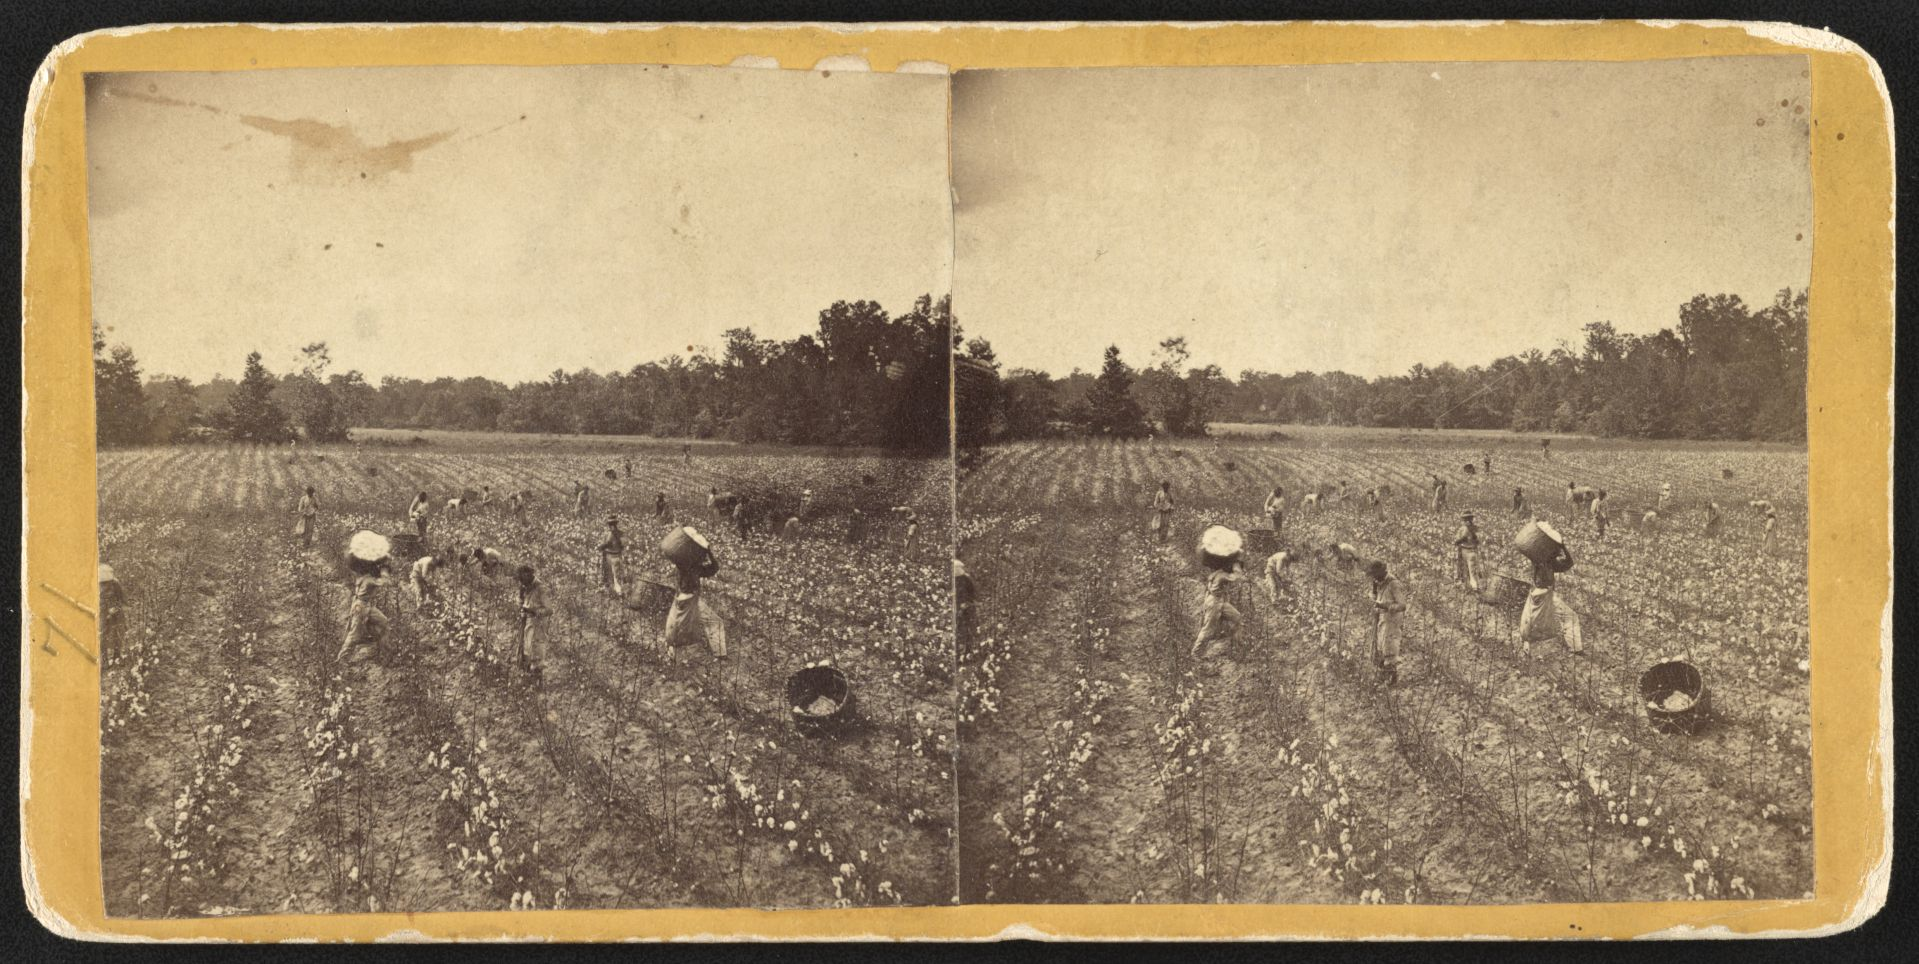 African Americans, possibly slaves, pick cotton near Montgomery, Ala., in 1860, (Lakin, J. H, photographer. [186] https://www.loc.gov/item/2012648057/0